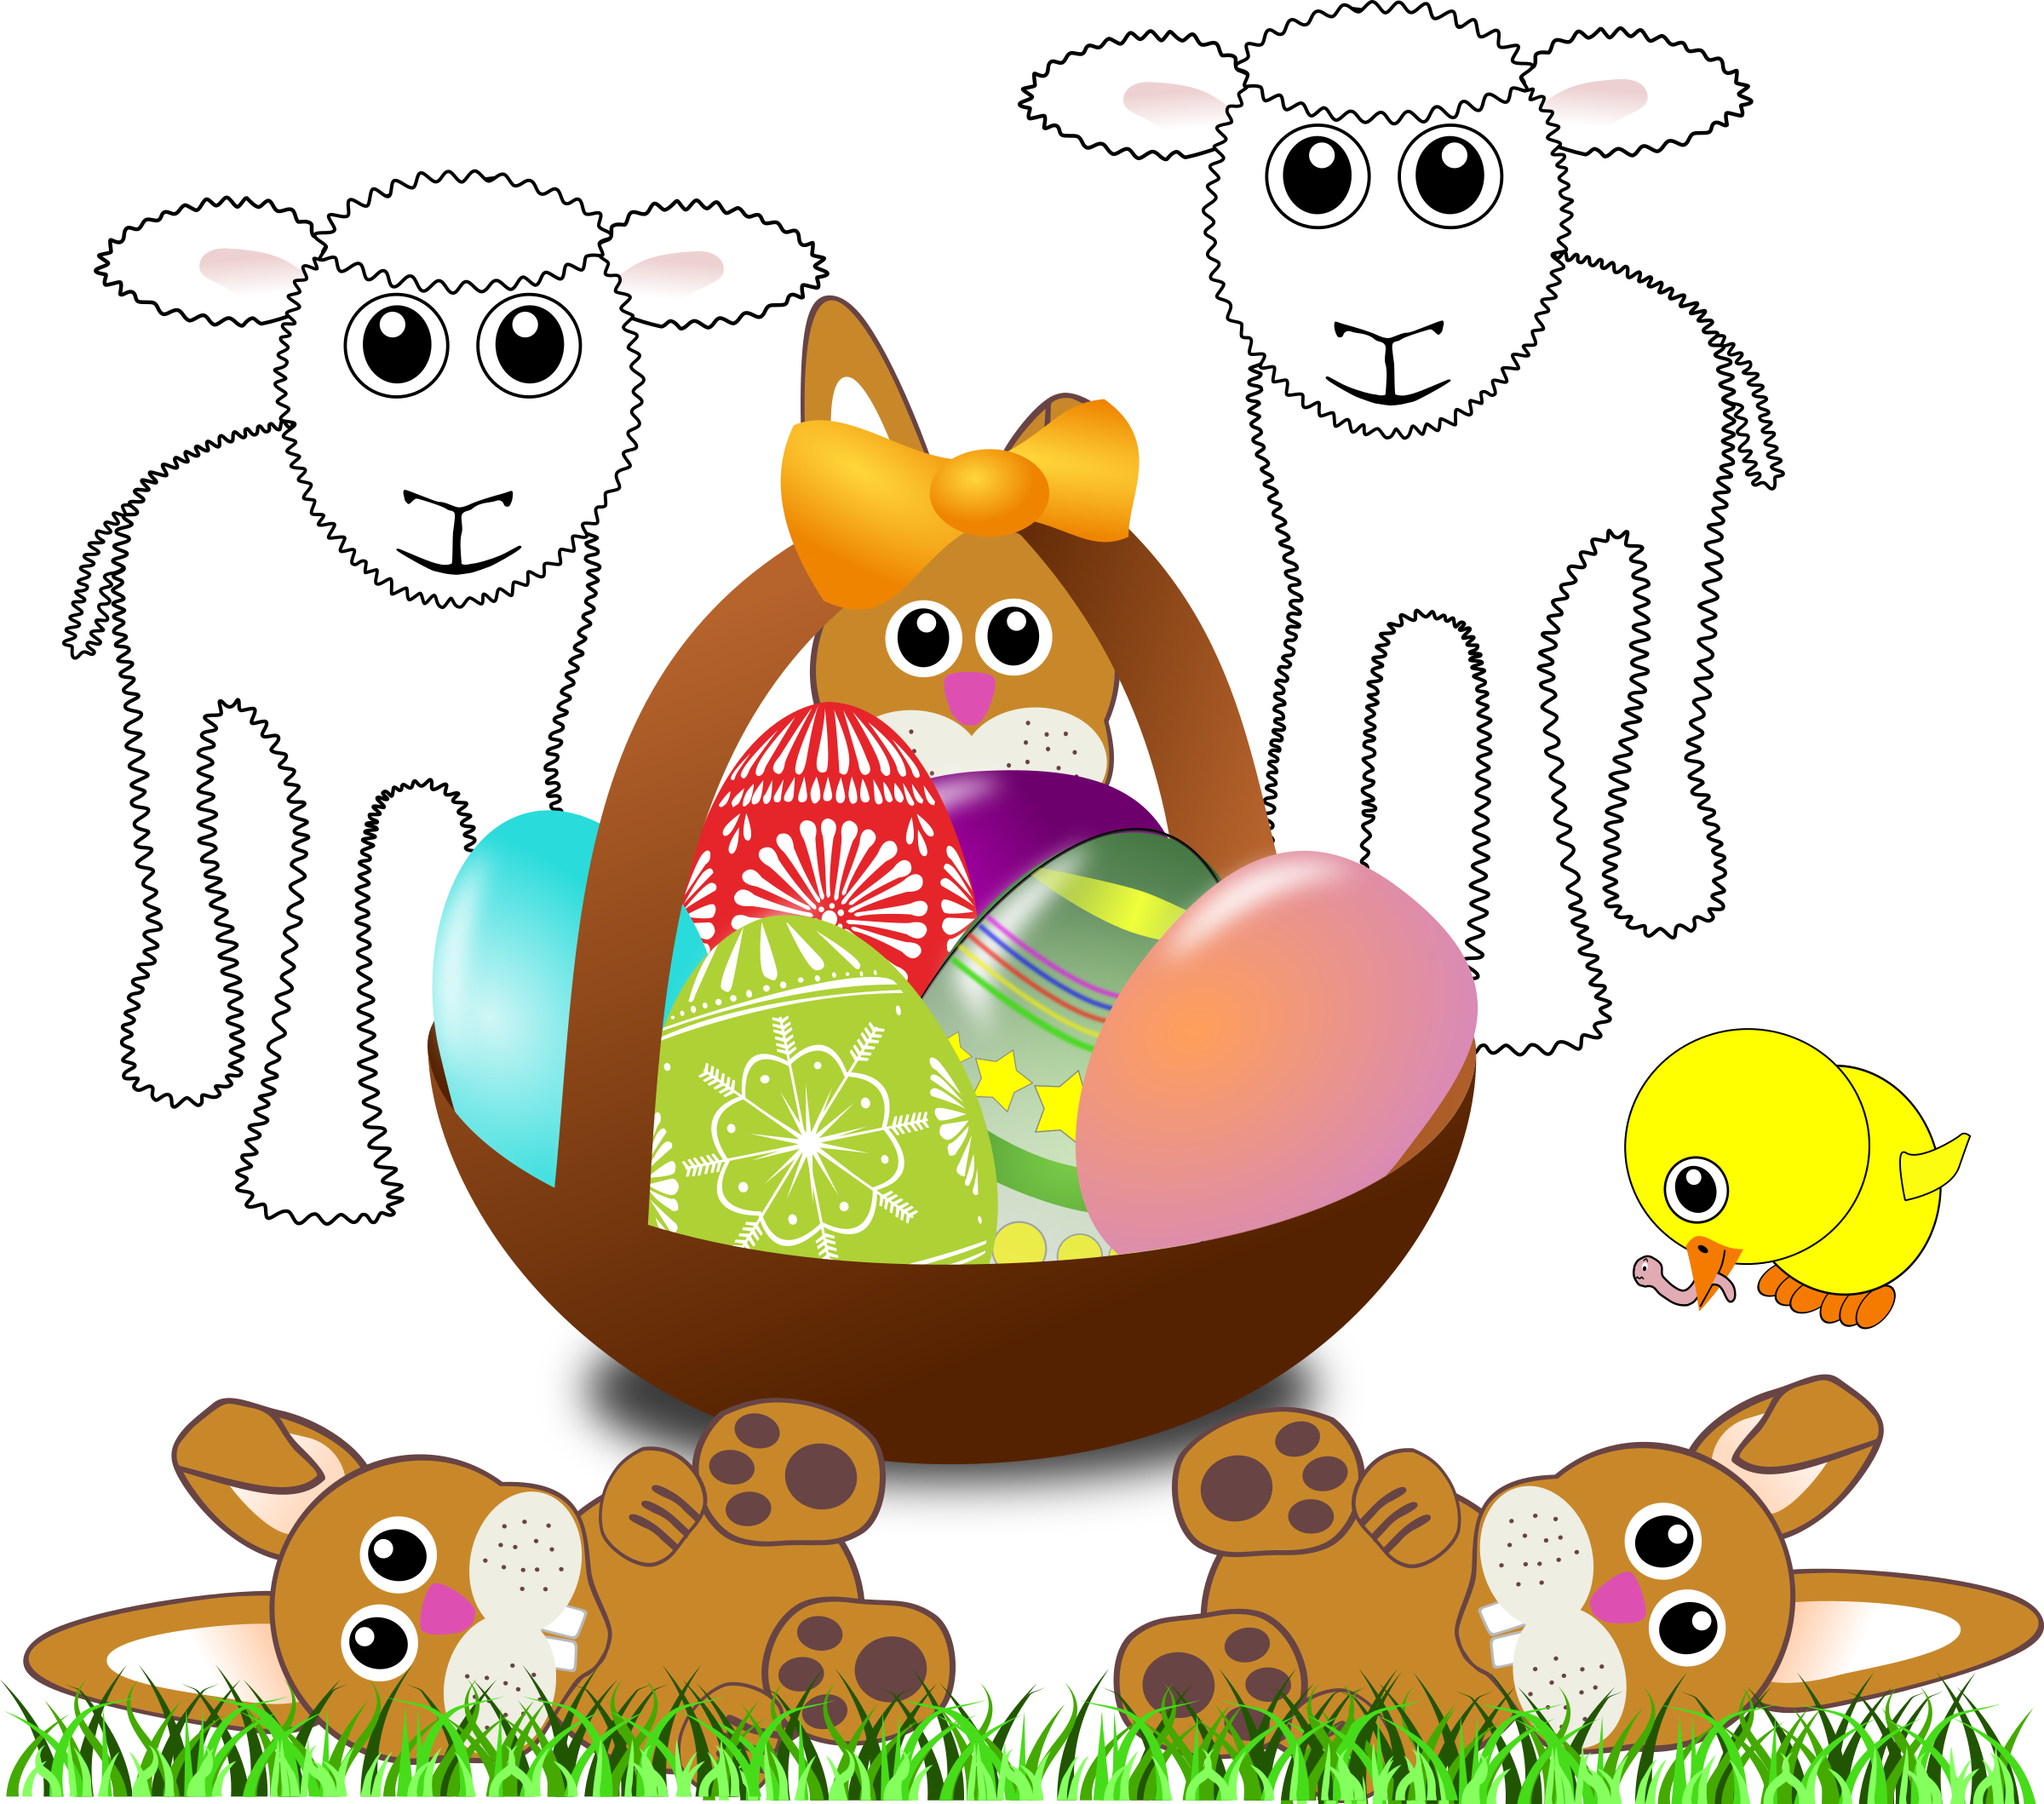 Funny lambs, bunnies and chick with Easter eggs in a basket by palomaironique